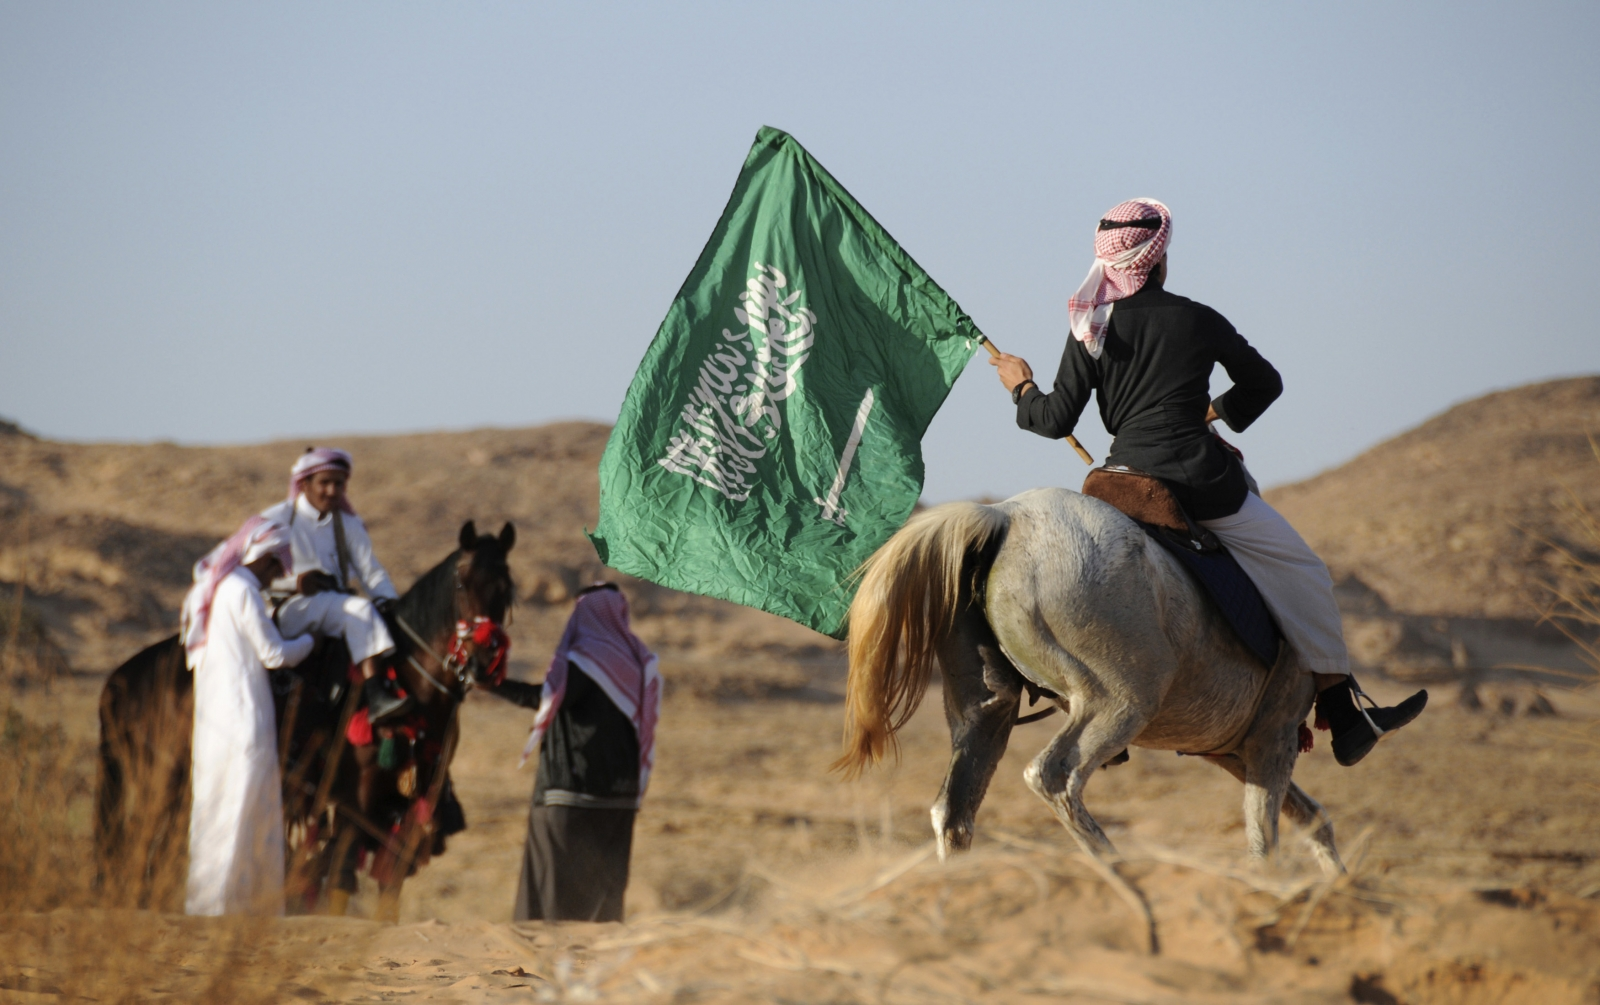 A Saudi man riding a horse waves a national flag